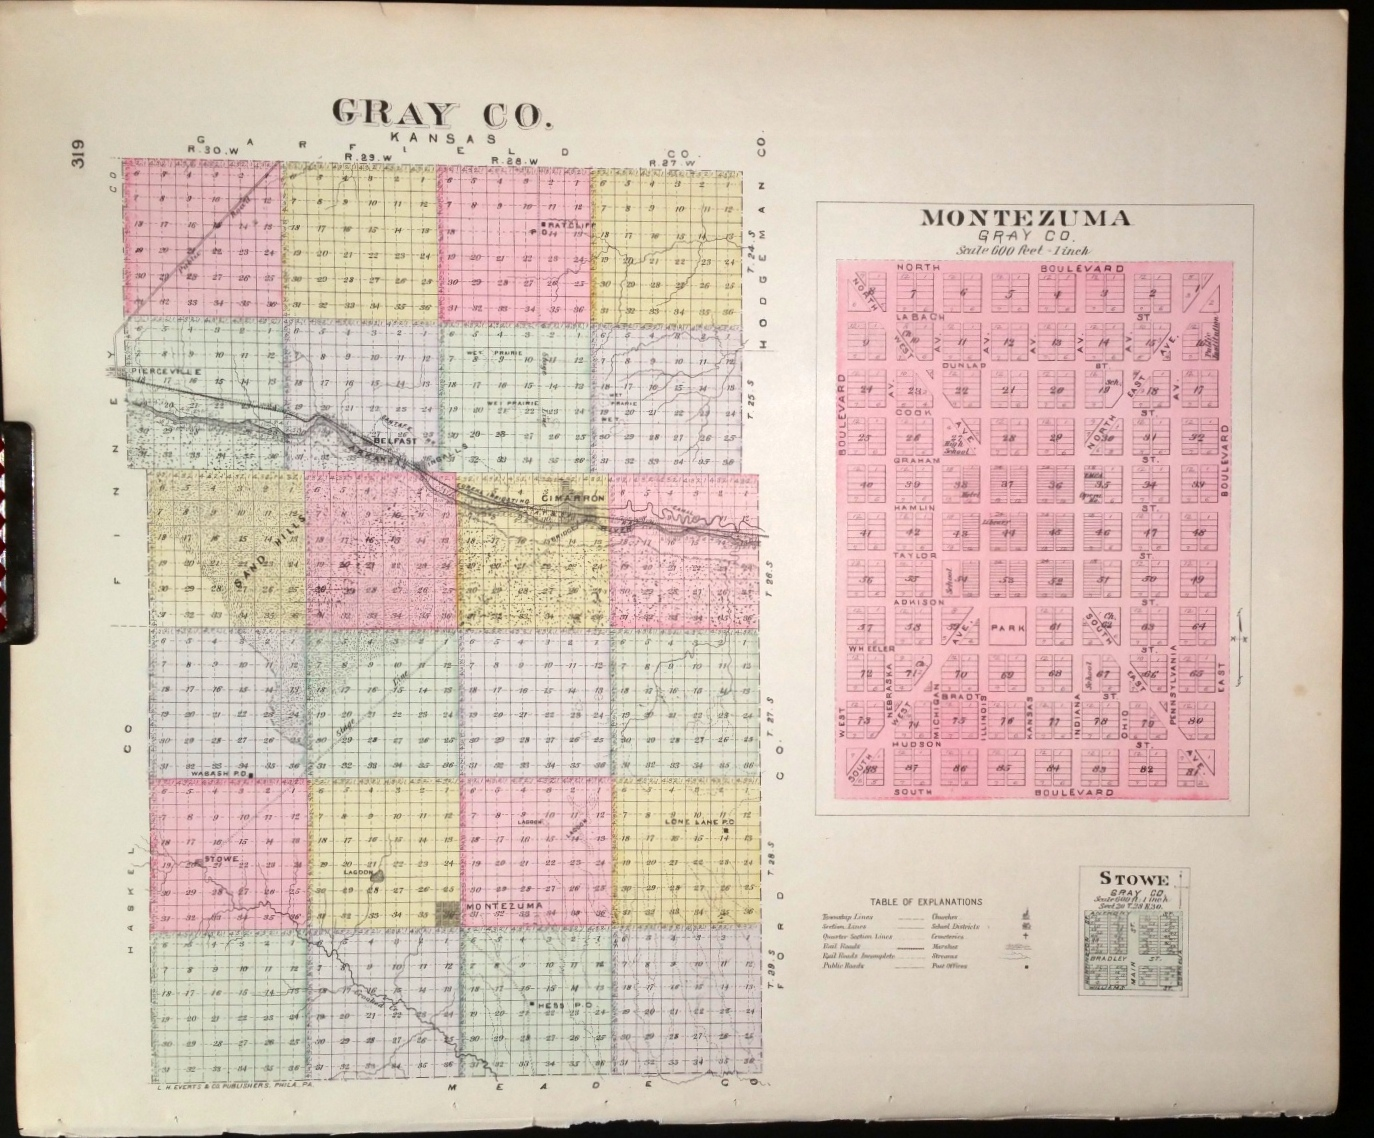 Image for [Map] Gray County, Kansas, Stowe, & Montezuma (of Gray Co.) [backed with] Cimarron, Gray Co.